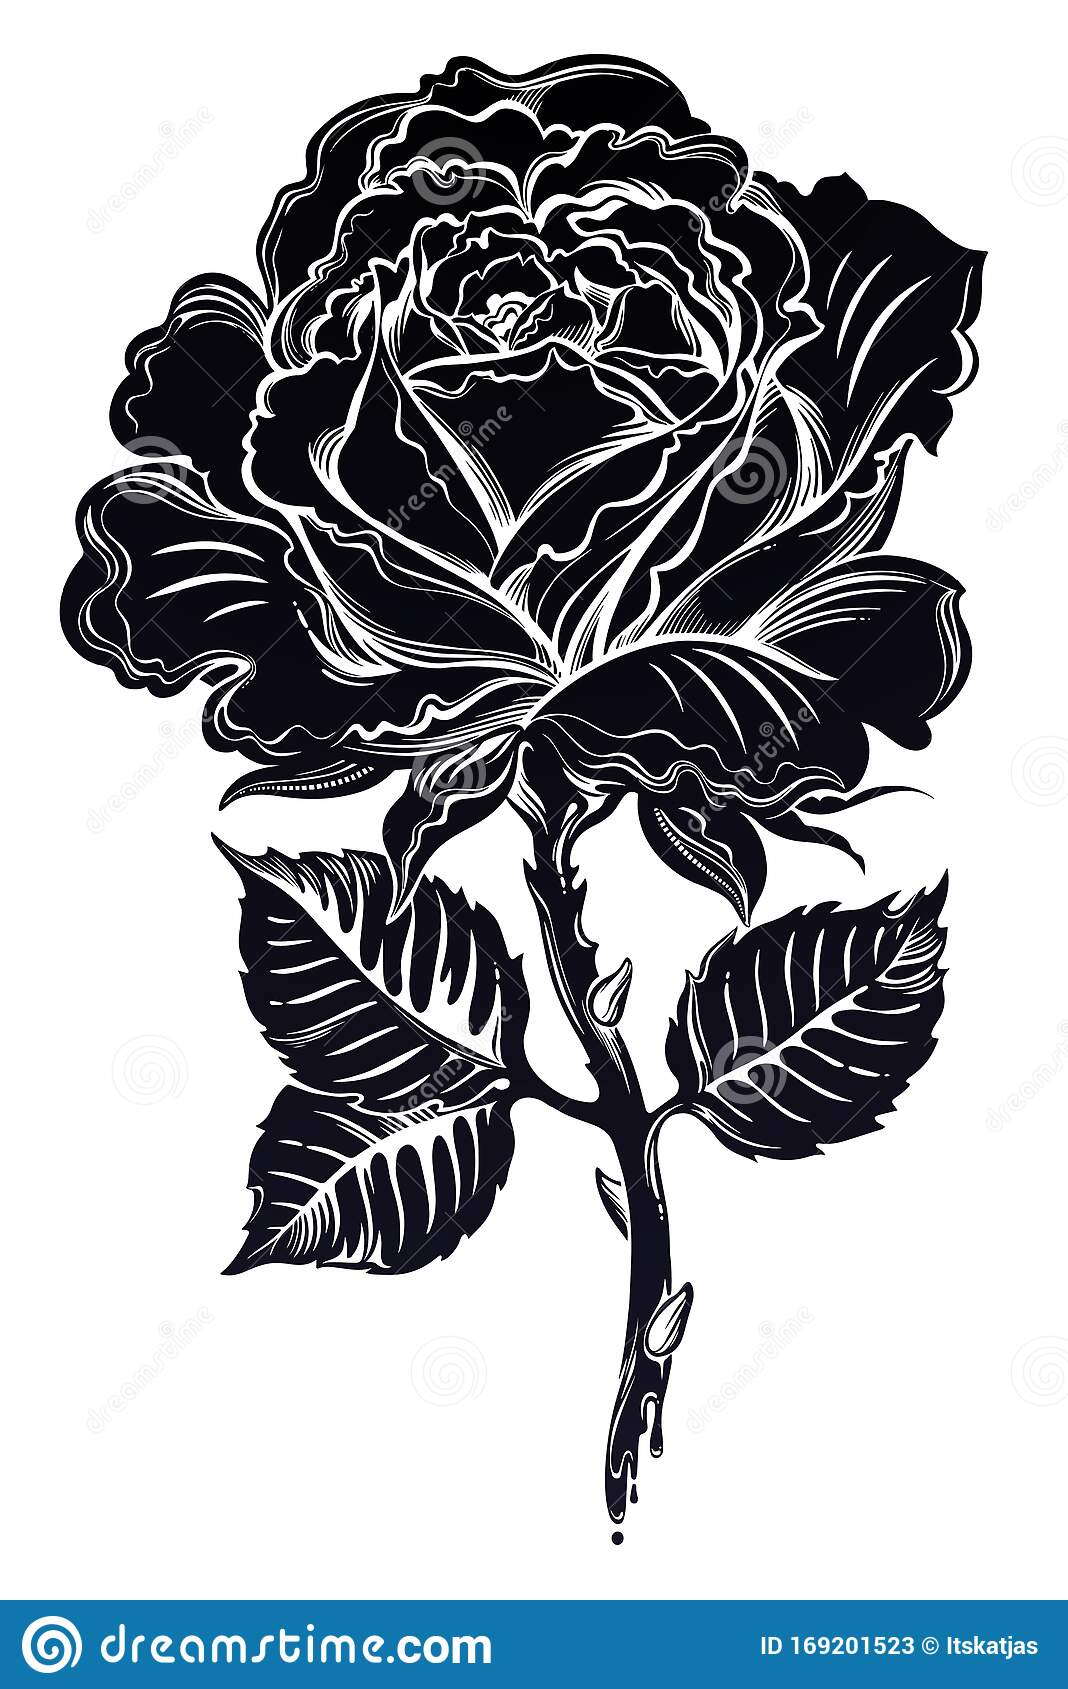 Dramatic Floral Hand Drawn Black Rose Blossom In Full Bloom In Flash Tattoo Style Stock Vector Illustration Of Elegant Line 169201523